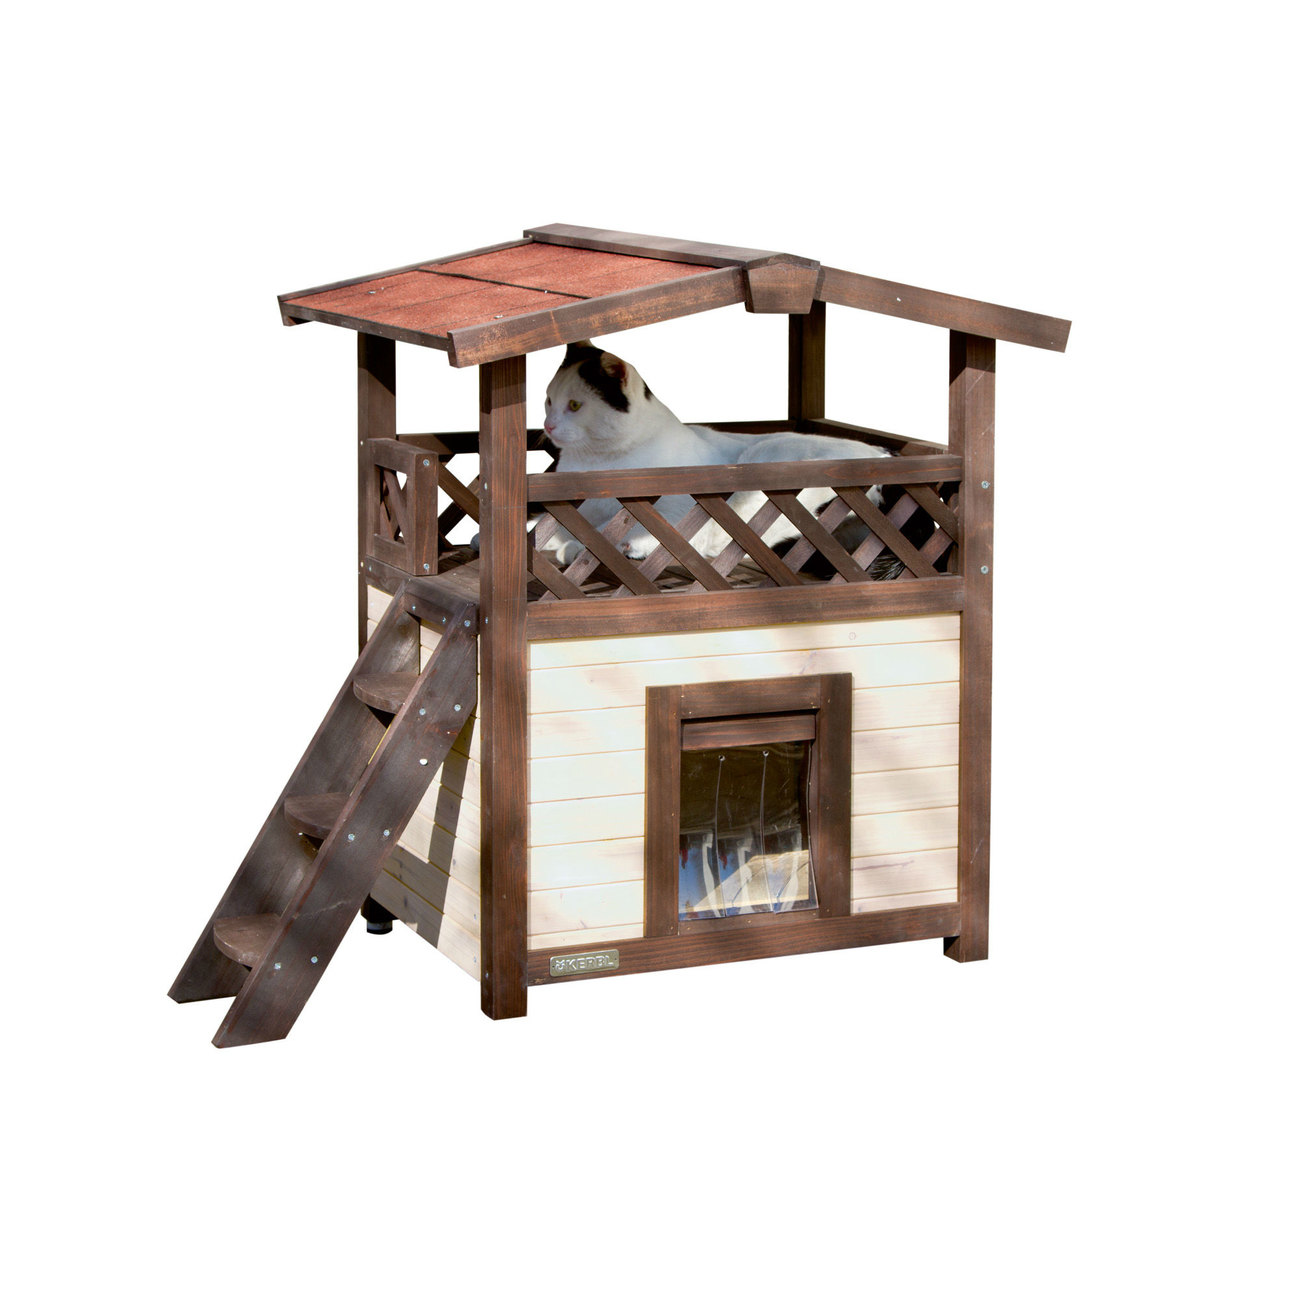 Kerbl Winterfestes Katzenhaus 4 Seasons Deluxe optional beheizbar, 88x57x77 cm